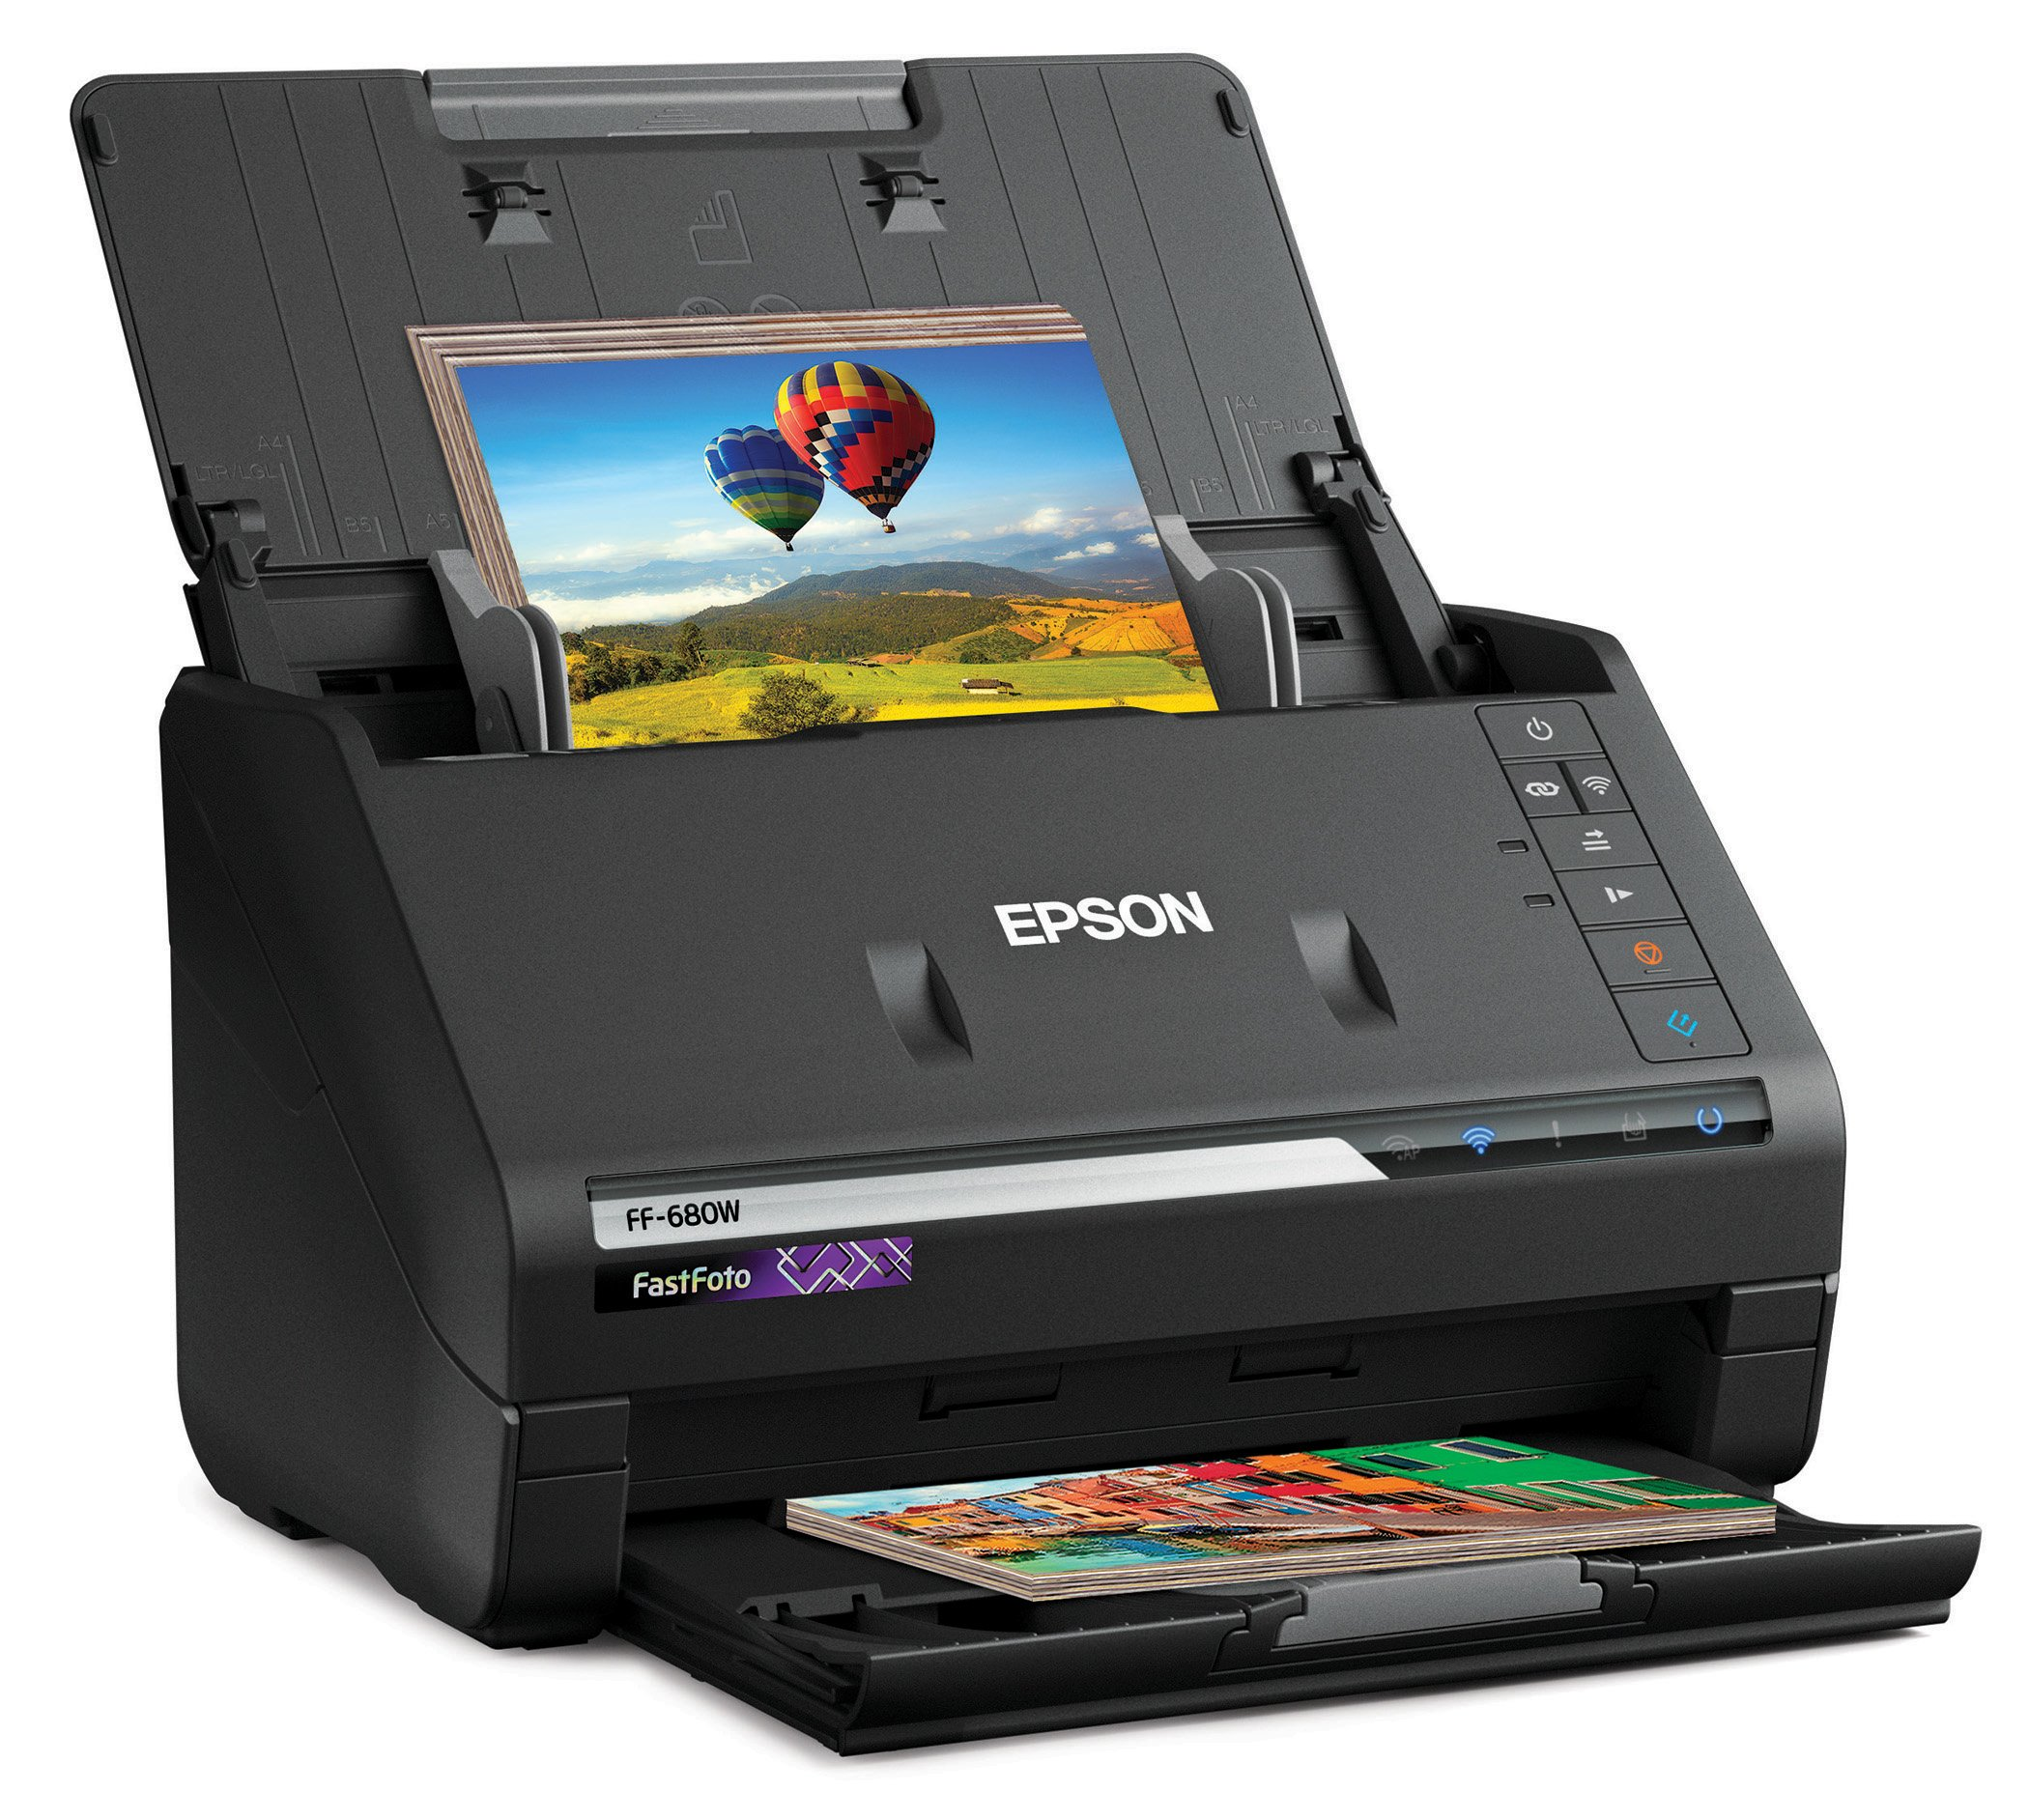 Epson FastFoto FF-680W Wireless High-Speed Photo and Document Scanning System by Epson